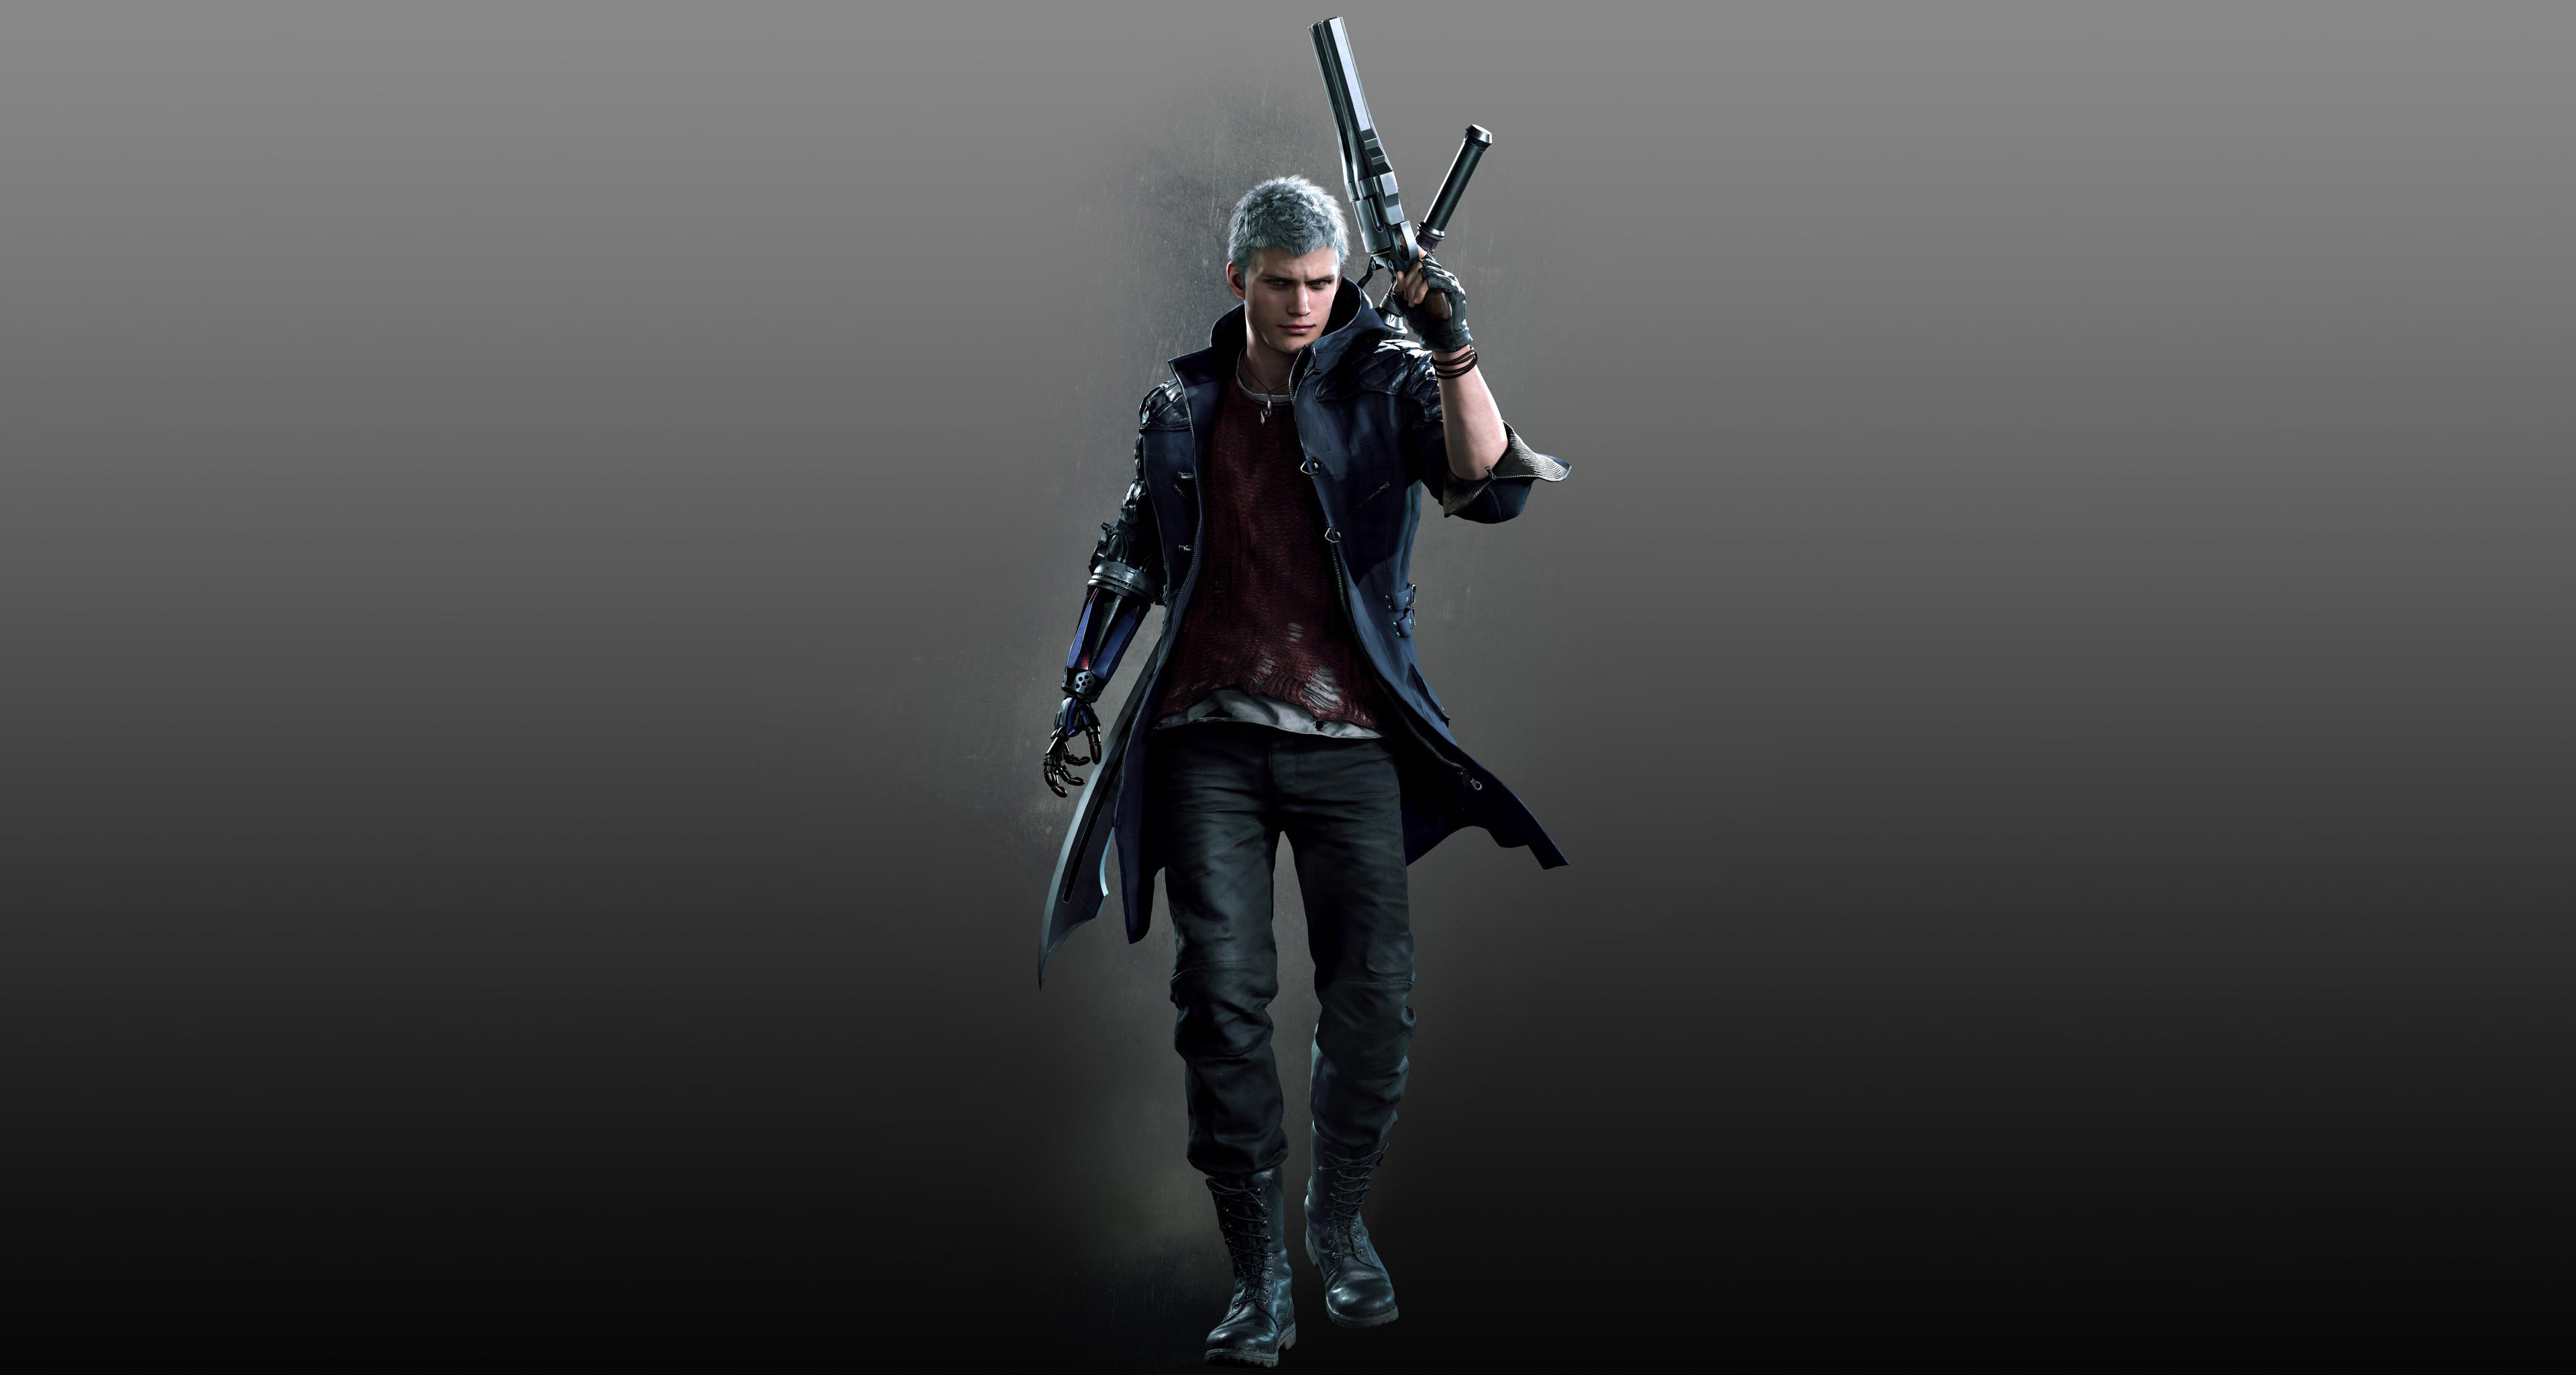 nero devil may cry 5 devil may cry 5 wallpaper nero 381898 hd wallpaper backgrounds download nero devil may cry 5 devil may cry 5